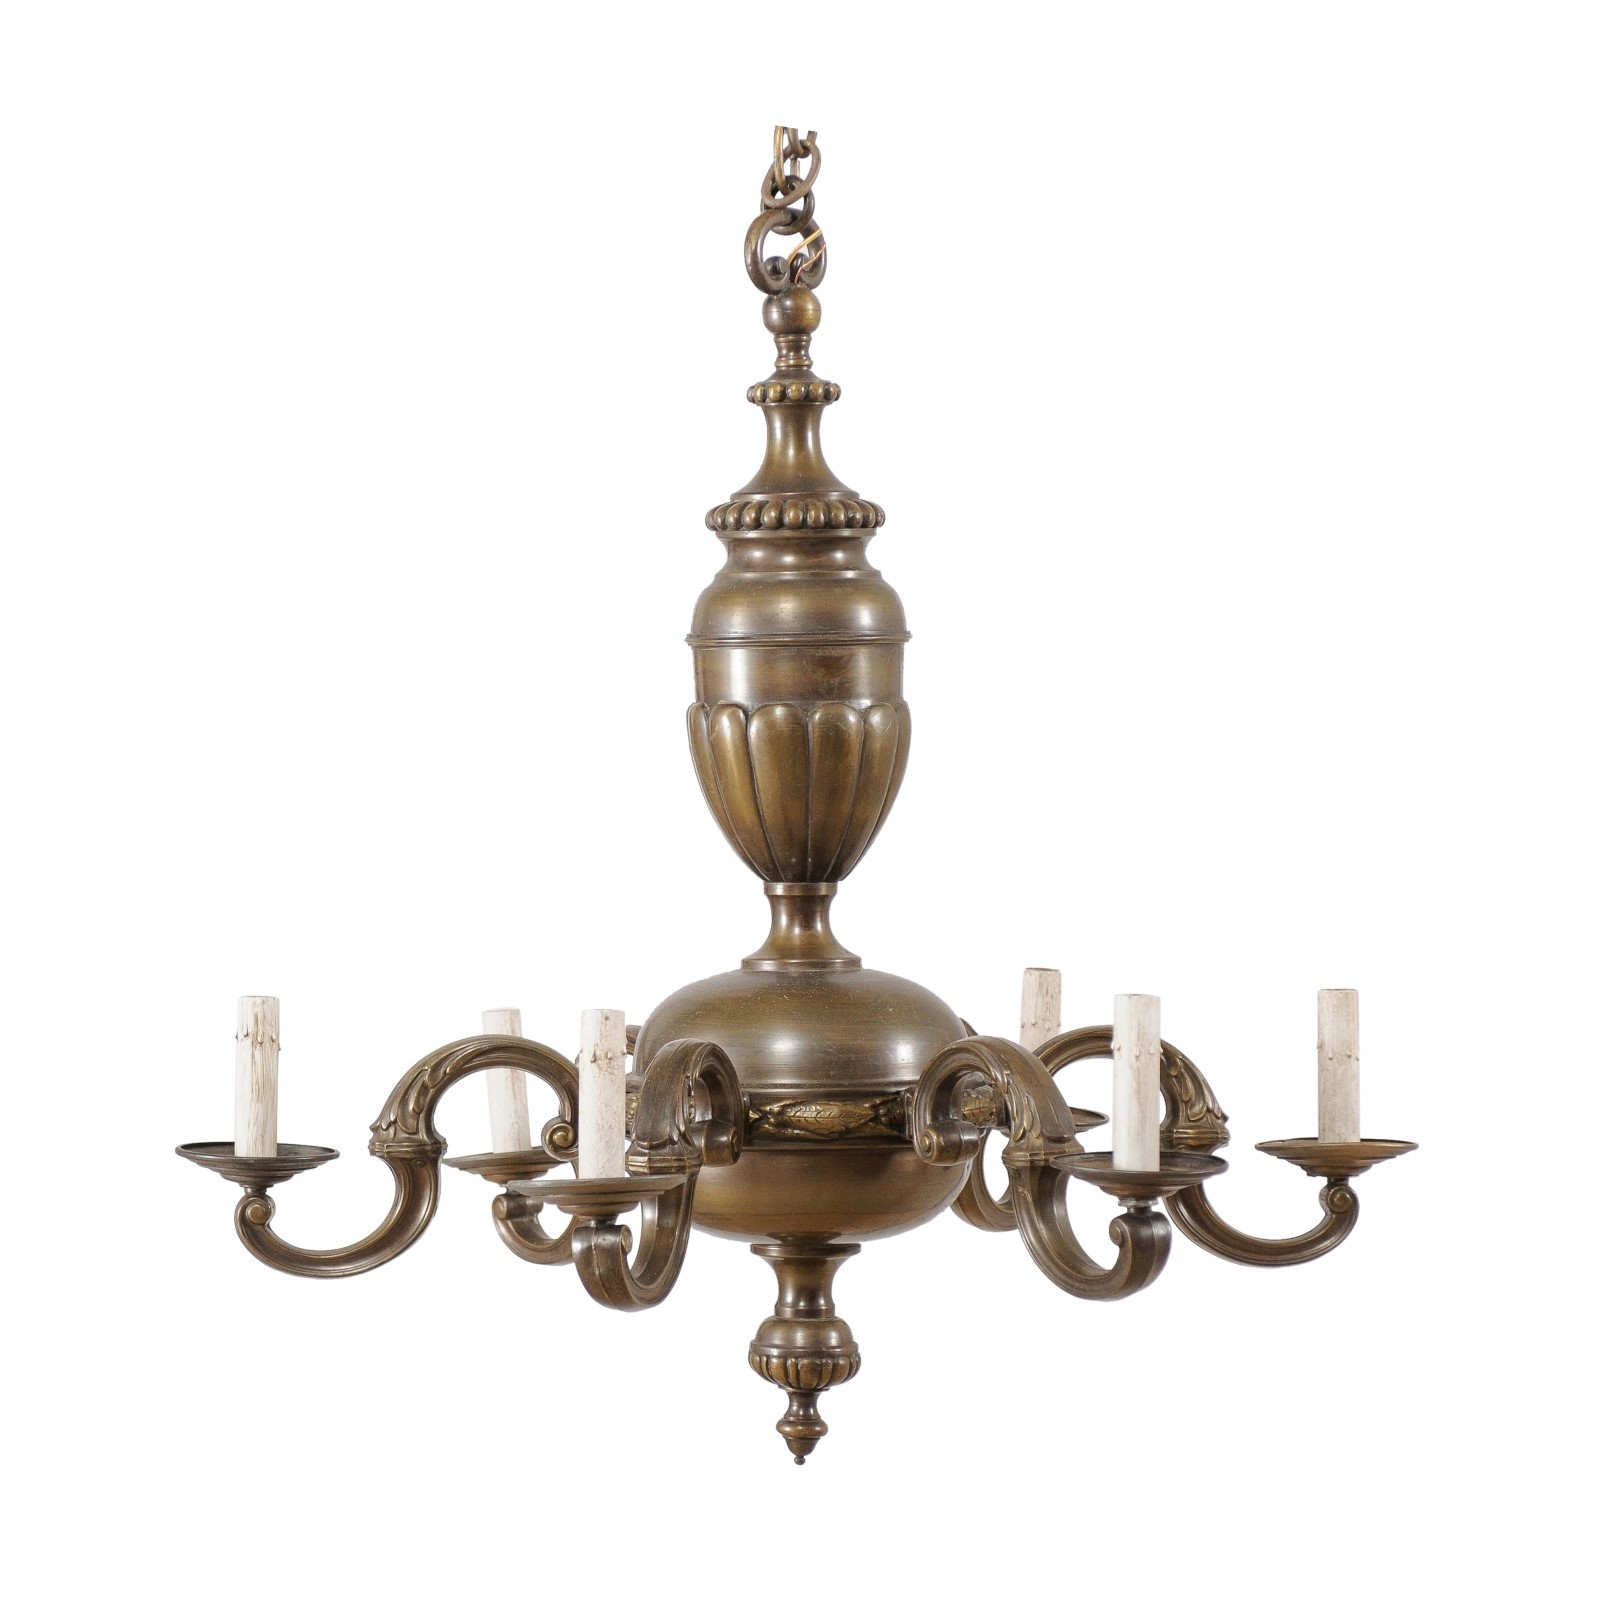 French Bronze Chandelier, Mid 20th C.